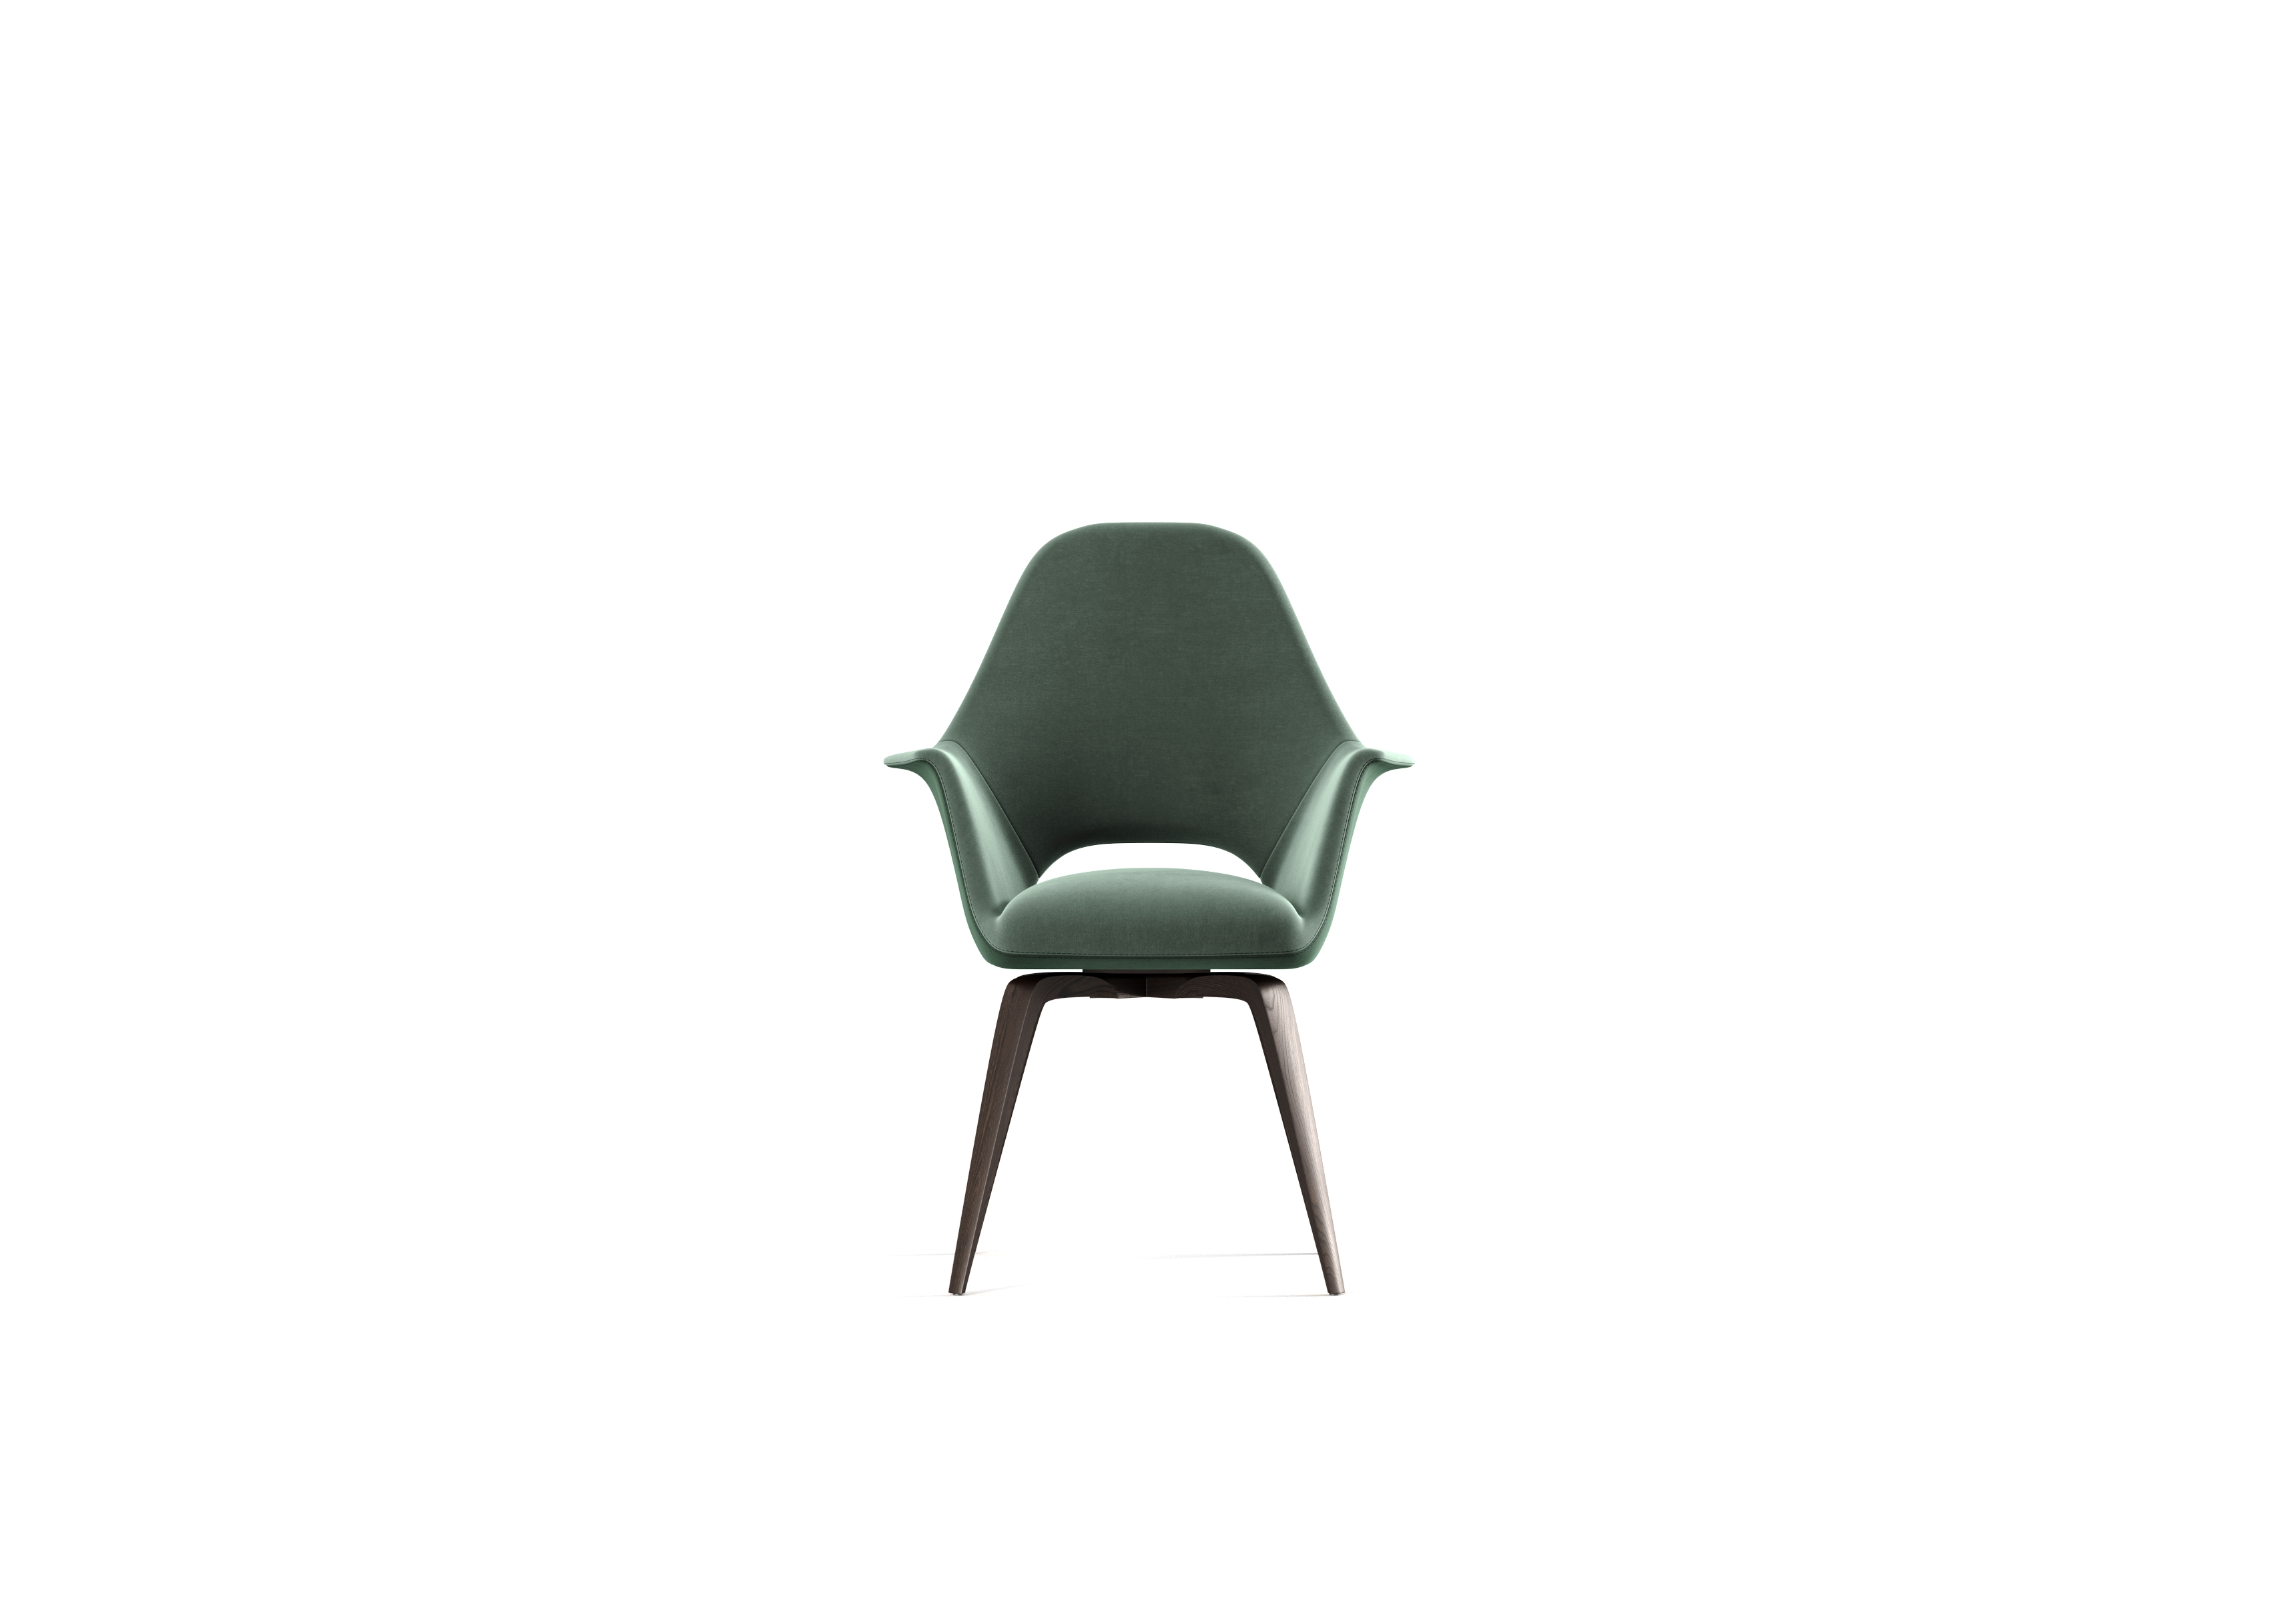 Chair with arms 02 (2) W63 x L62 x H88